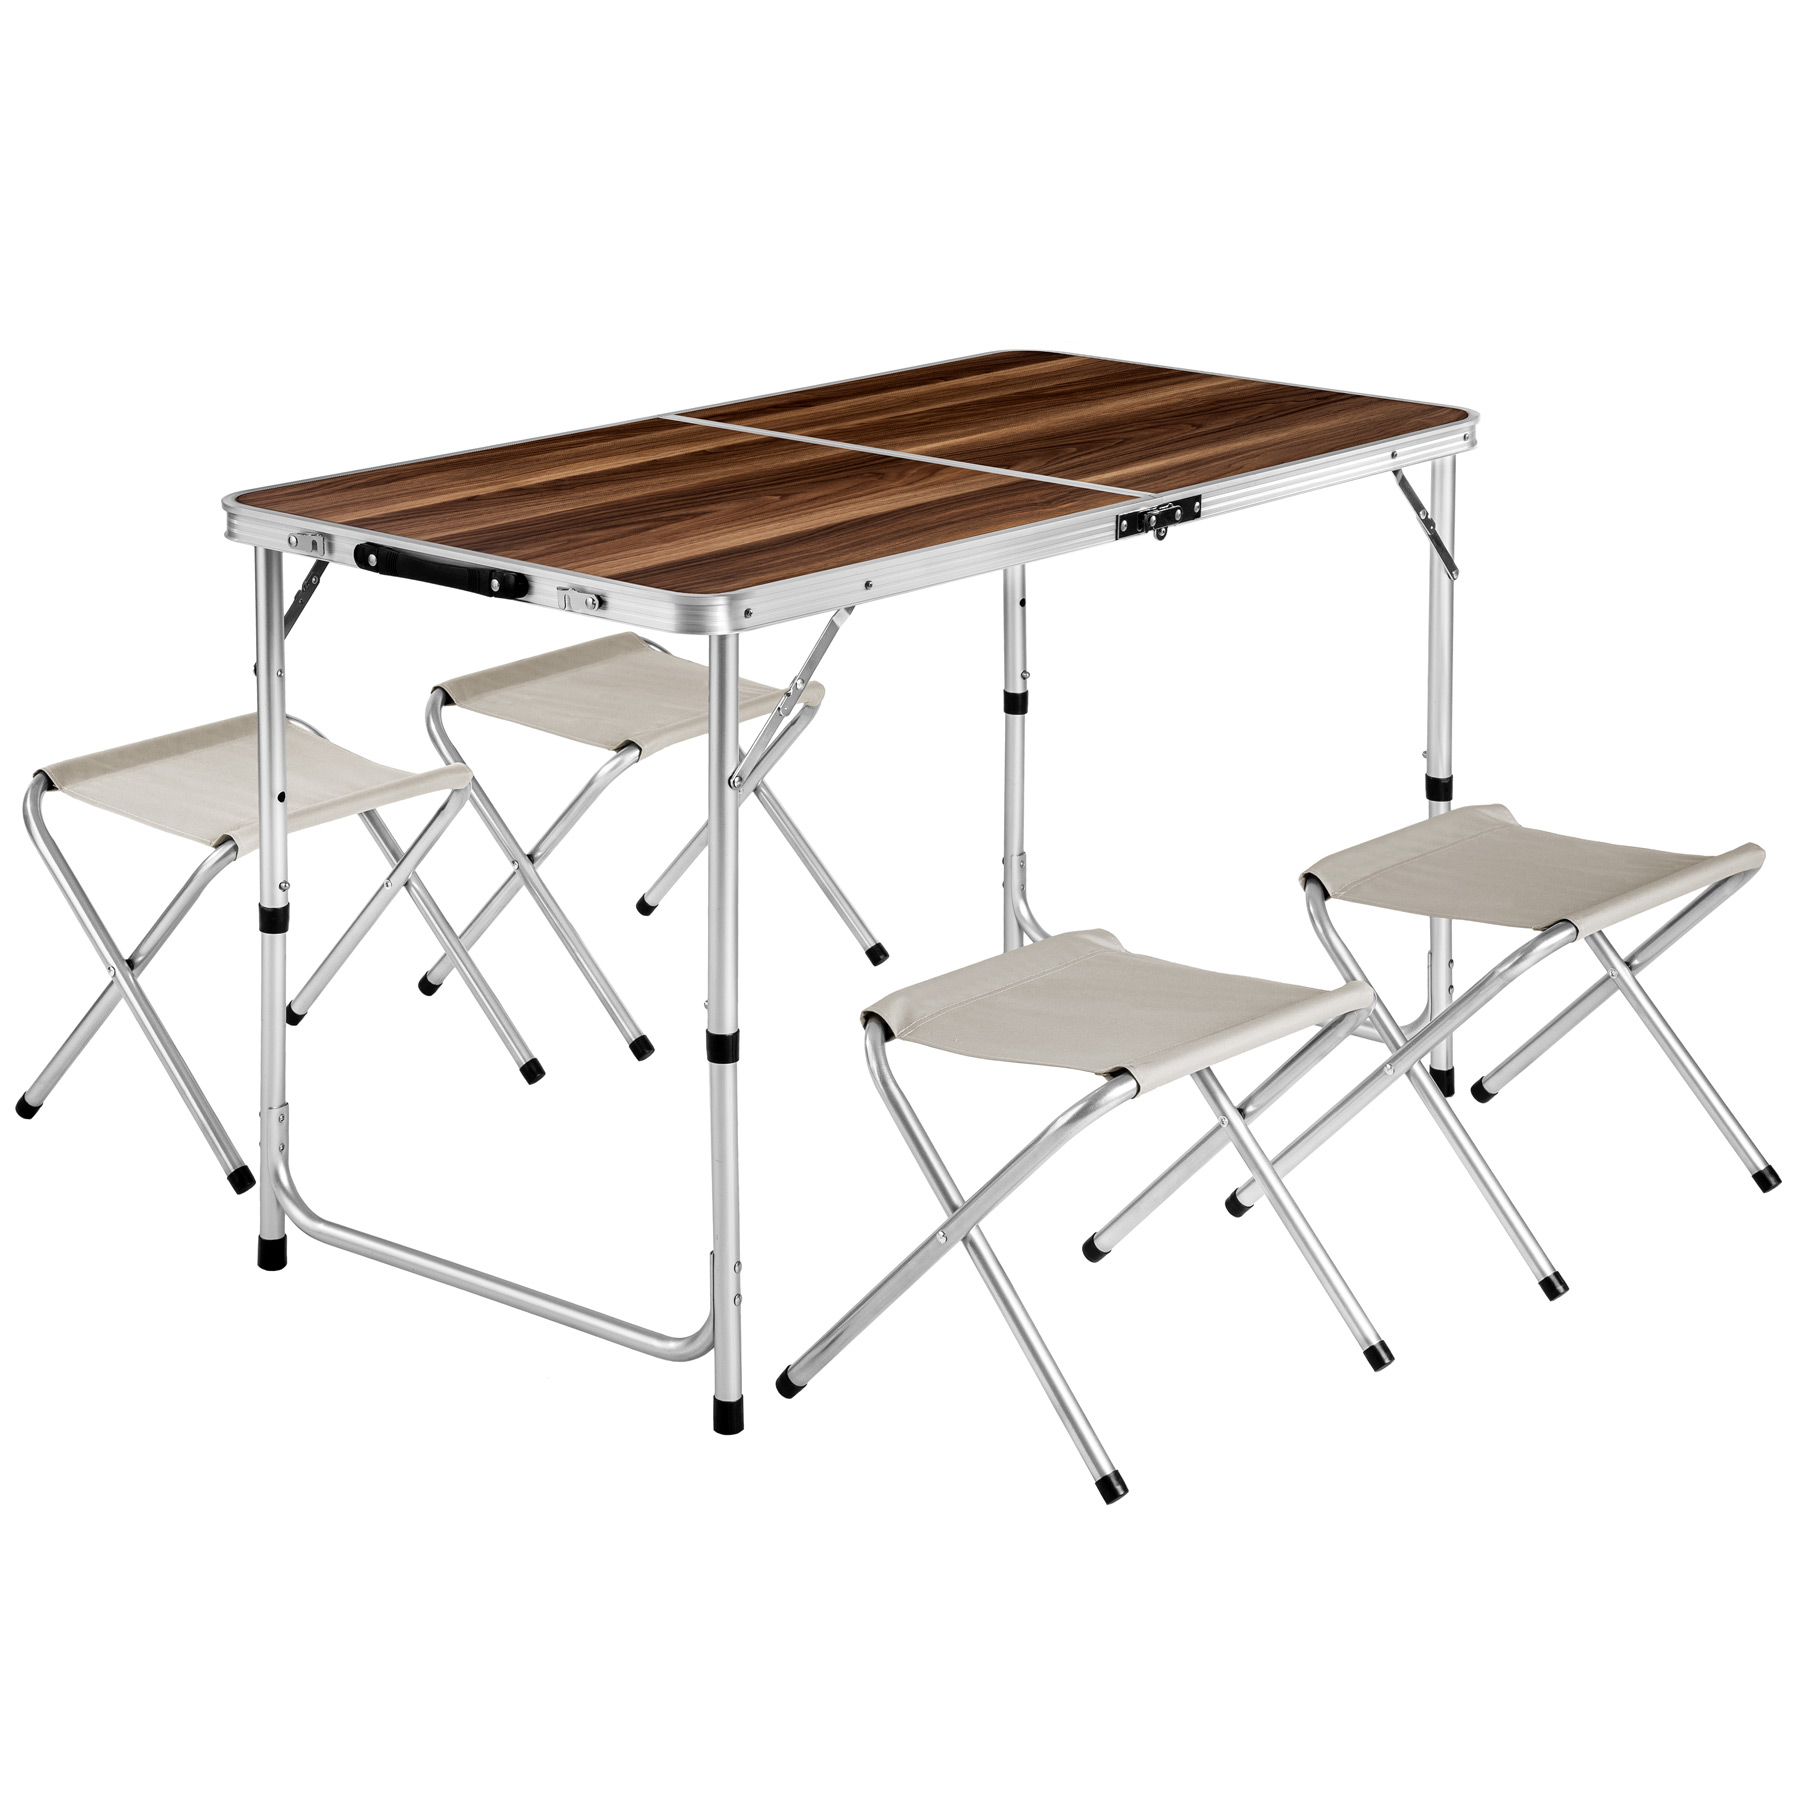 Eensemble table pliante valise avec 4 tabourets camping - Table de cuisine pliante but ...